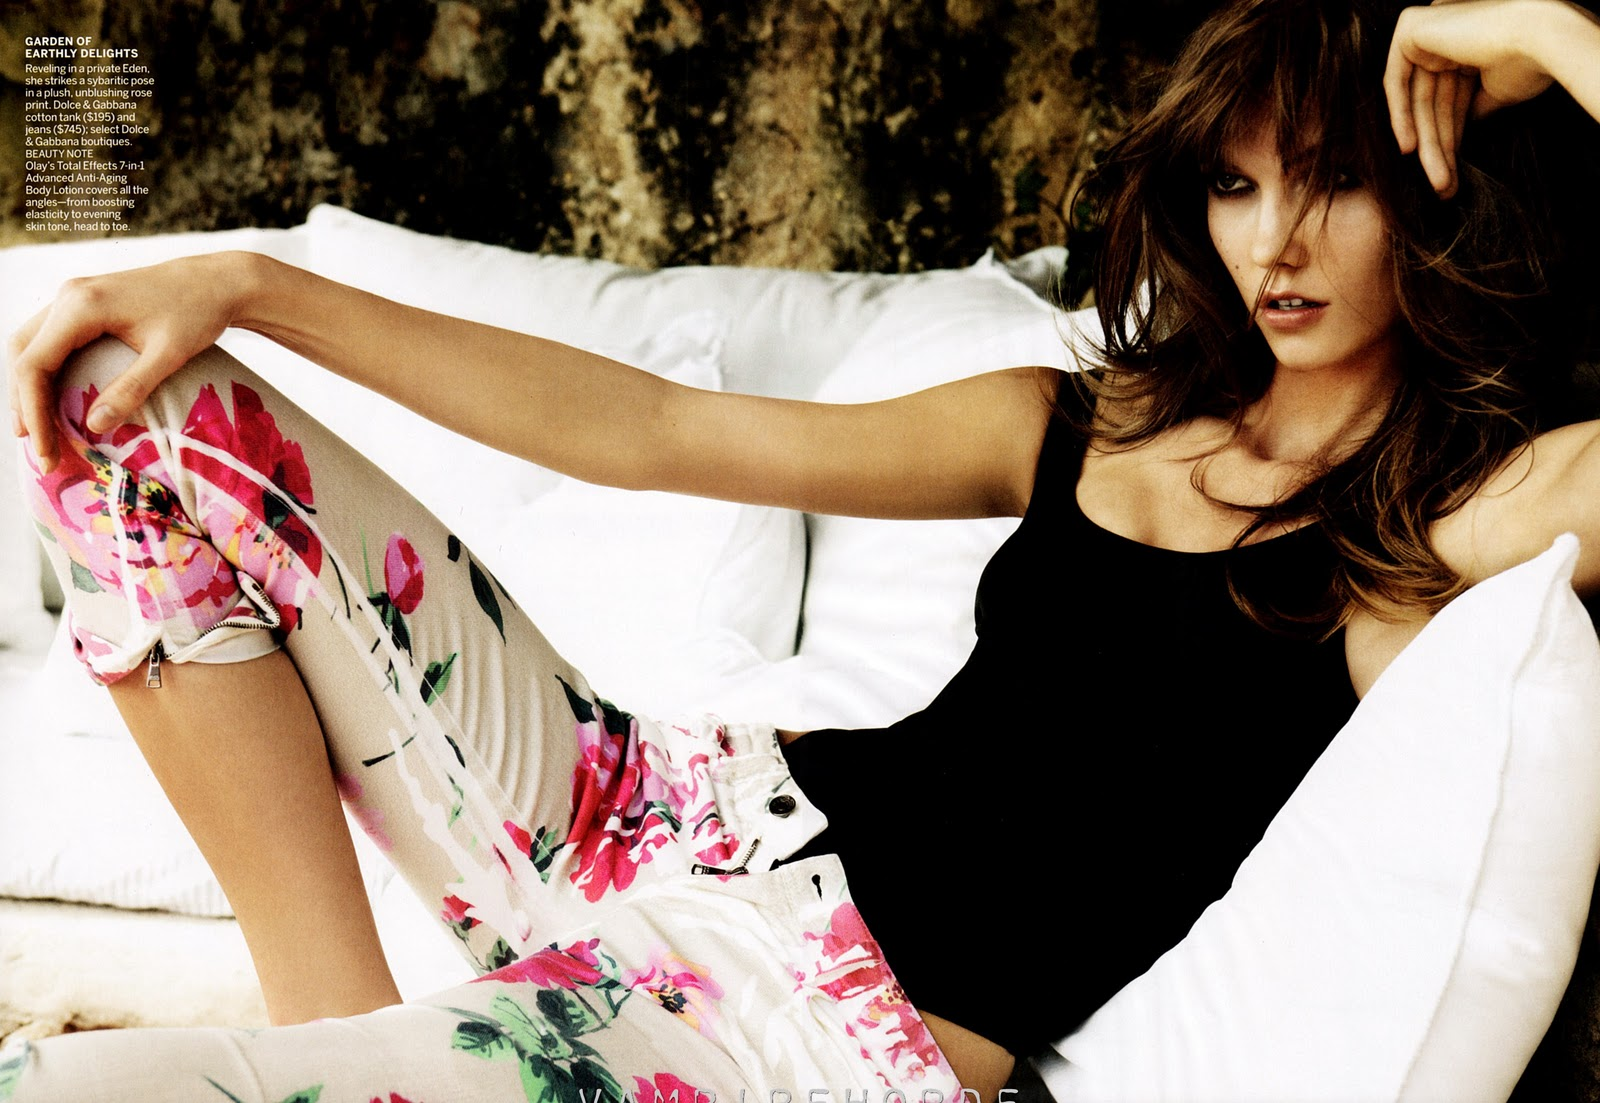 http://3.bp.blogspot.com/-Le6EETLQTqc/TsxRFiM6LZI/AAAAAAAAMl0/m8A8FZag-bk/s1600/Fashion_Scans_Remastered.Karlie_Kloss.VOGUE_.December_2011.Scanned_by_VampireHorde.HQ_.6.jpg